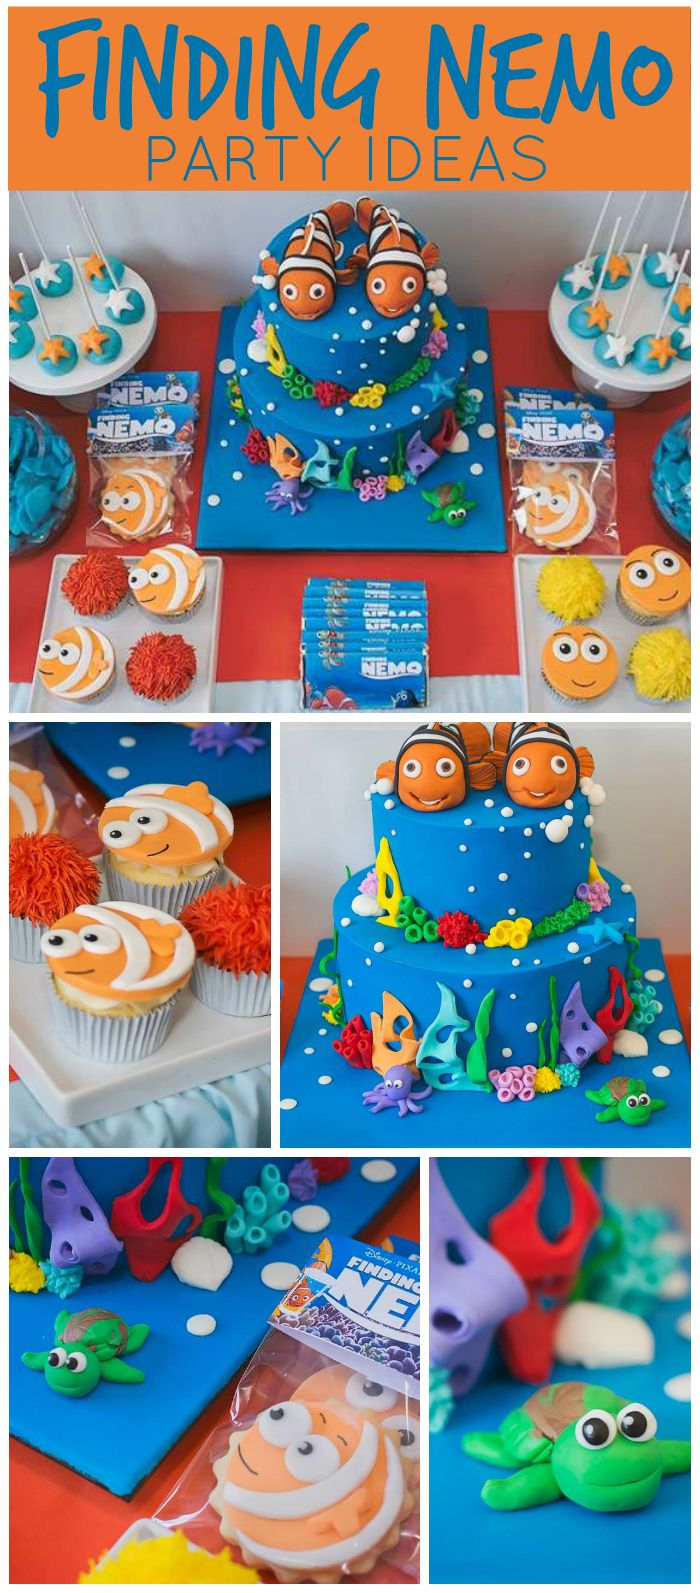 63 best Finding Dory Finding Nemo Party Ideas images on Pinterest